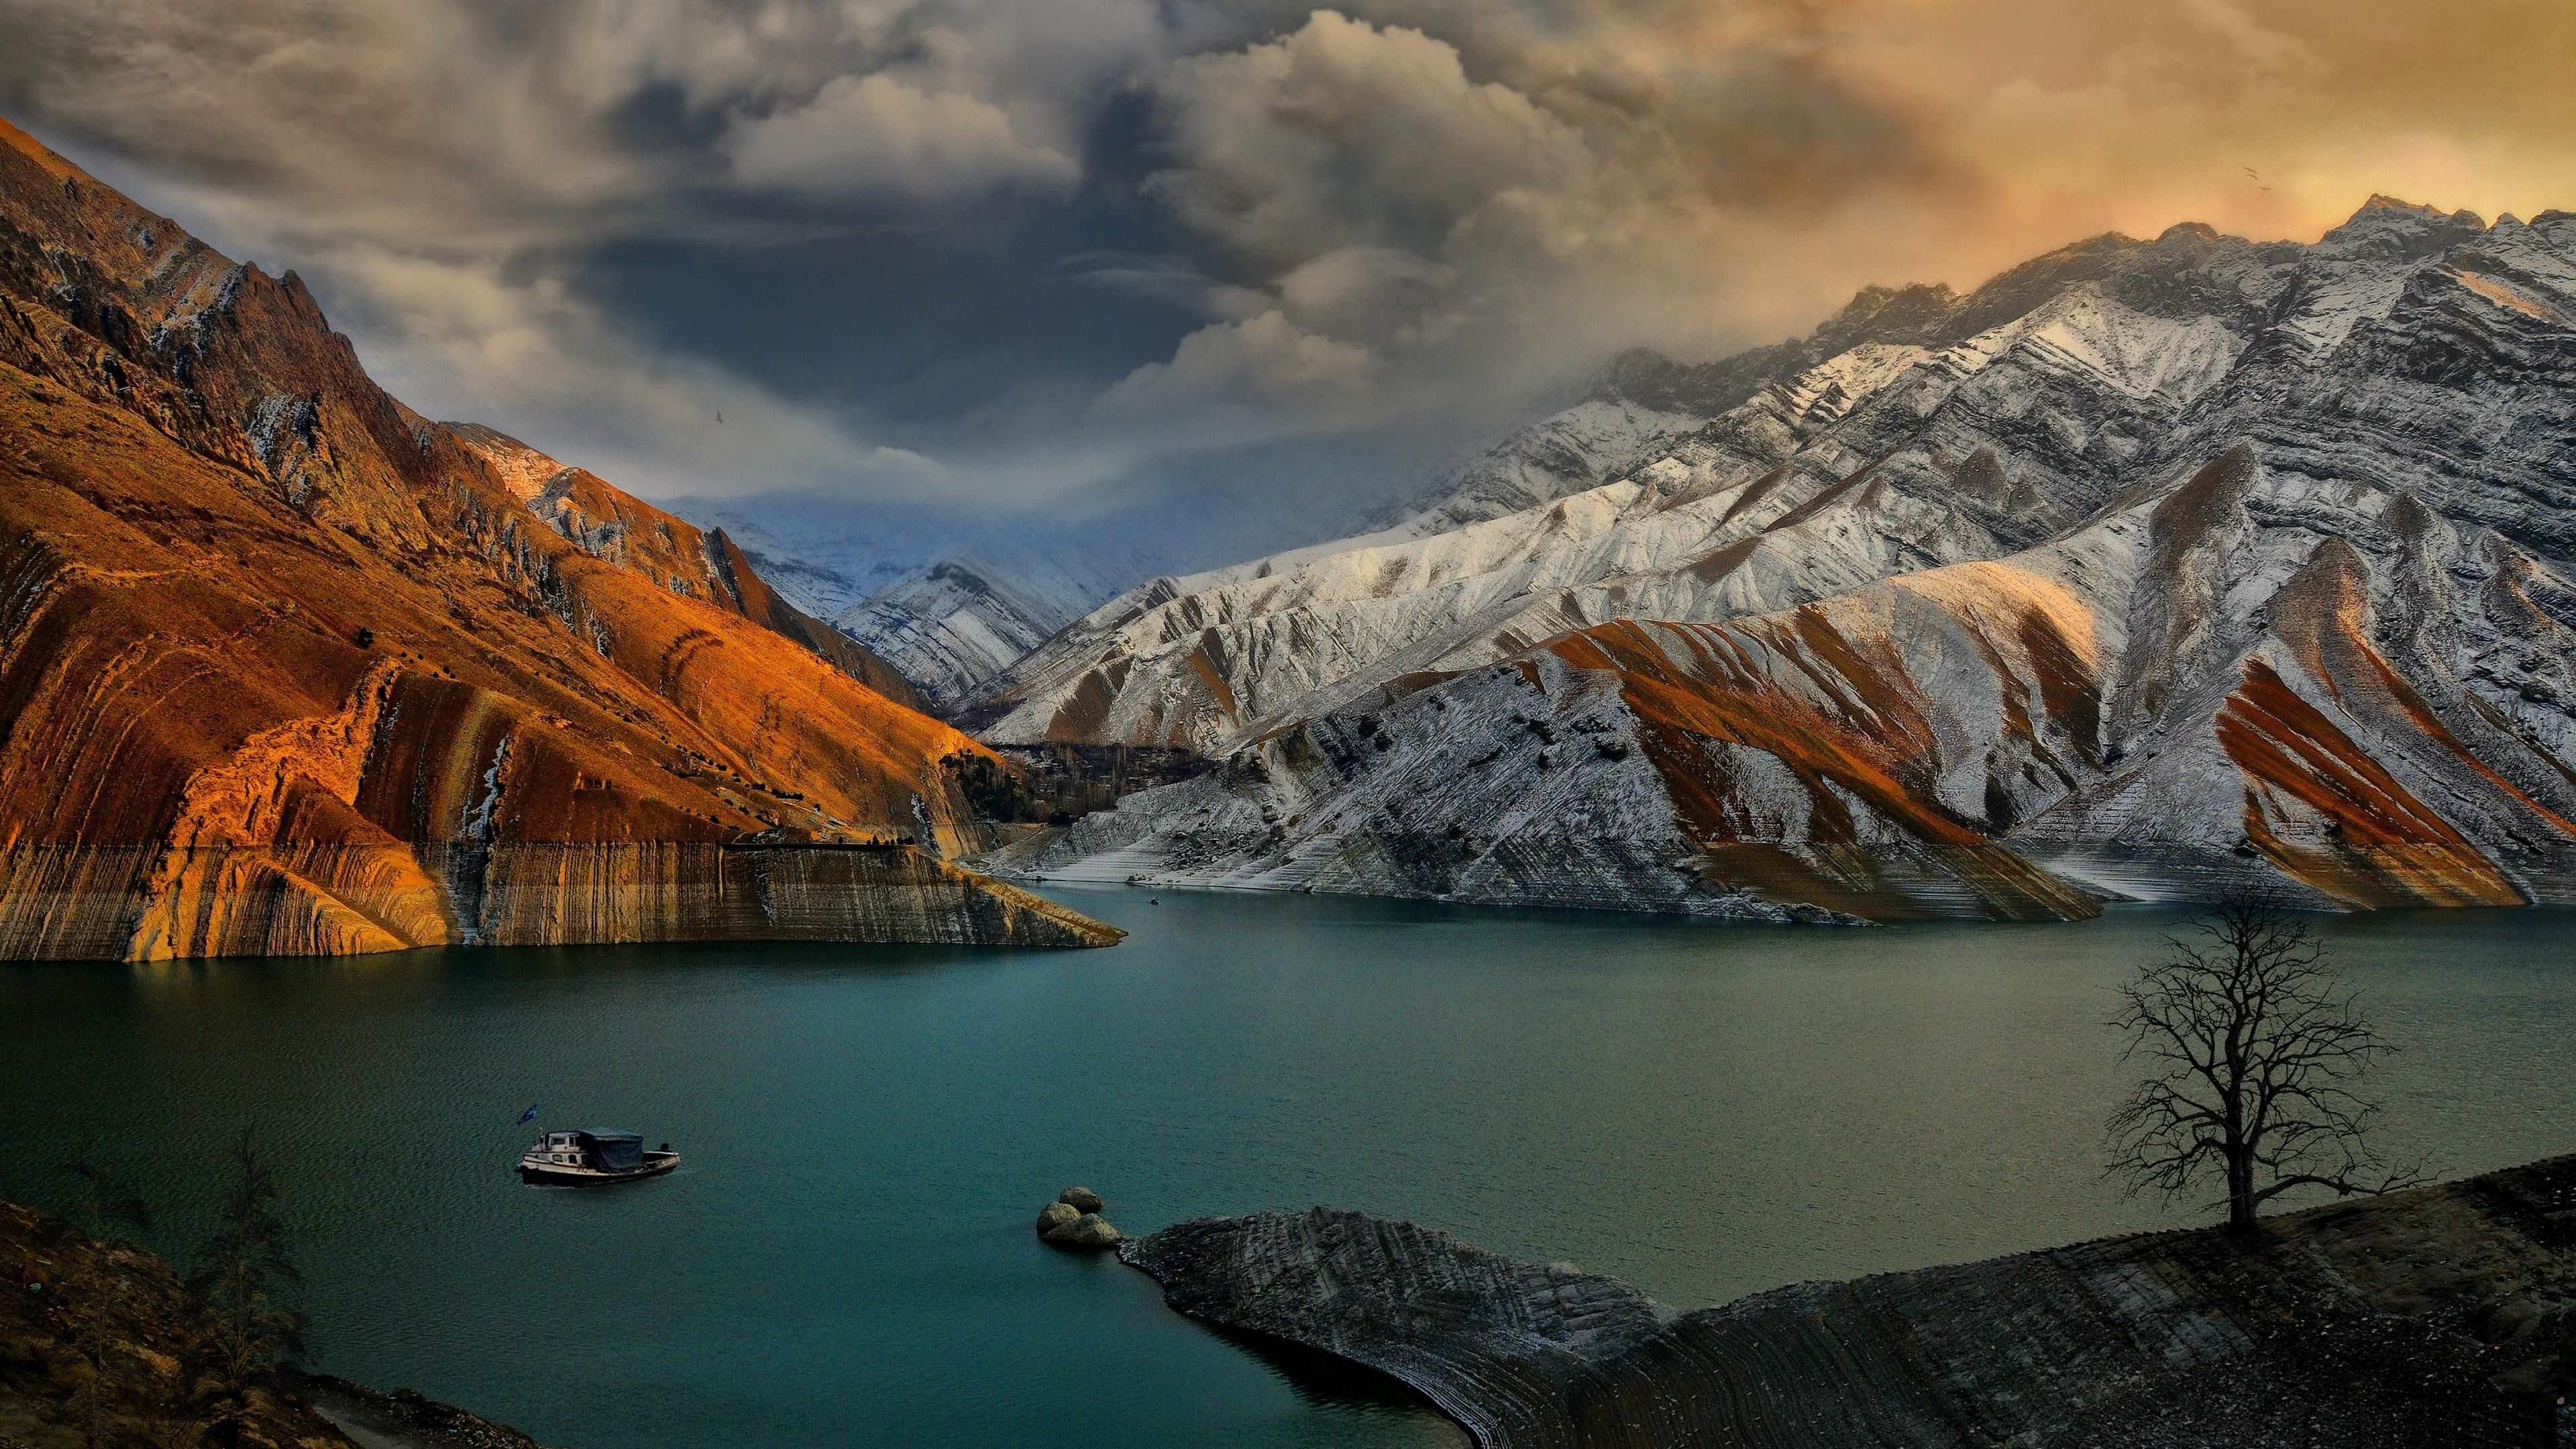 While We Re At It Iran Is Also Beautiful Amir Kabir Dam Lake Landscape Landscape Wallpaper Natural Scenery